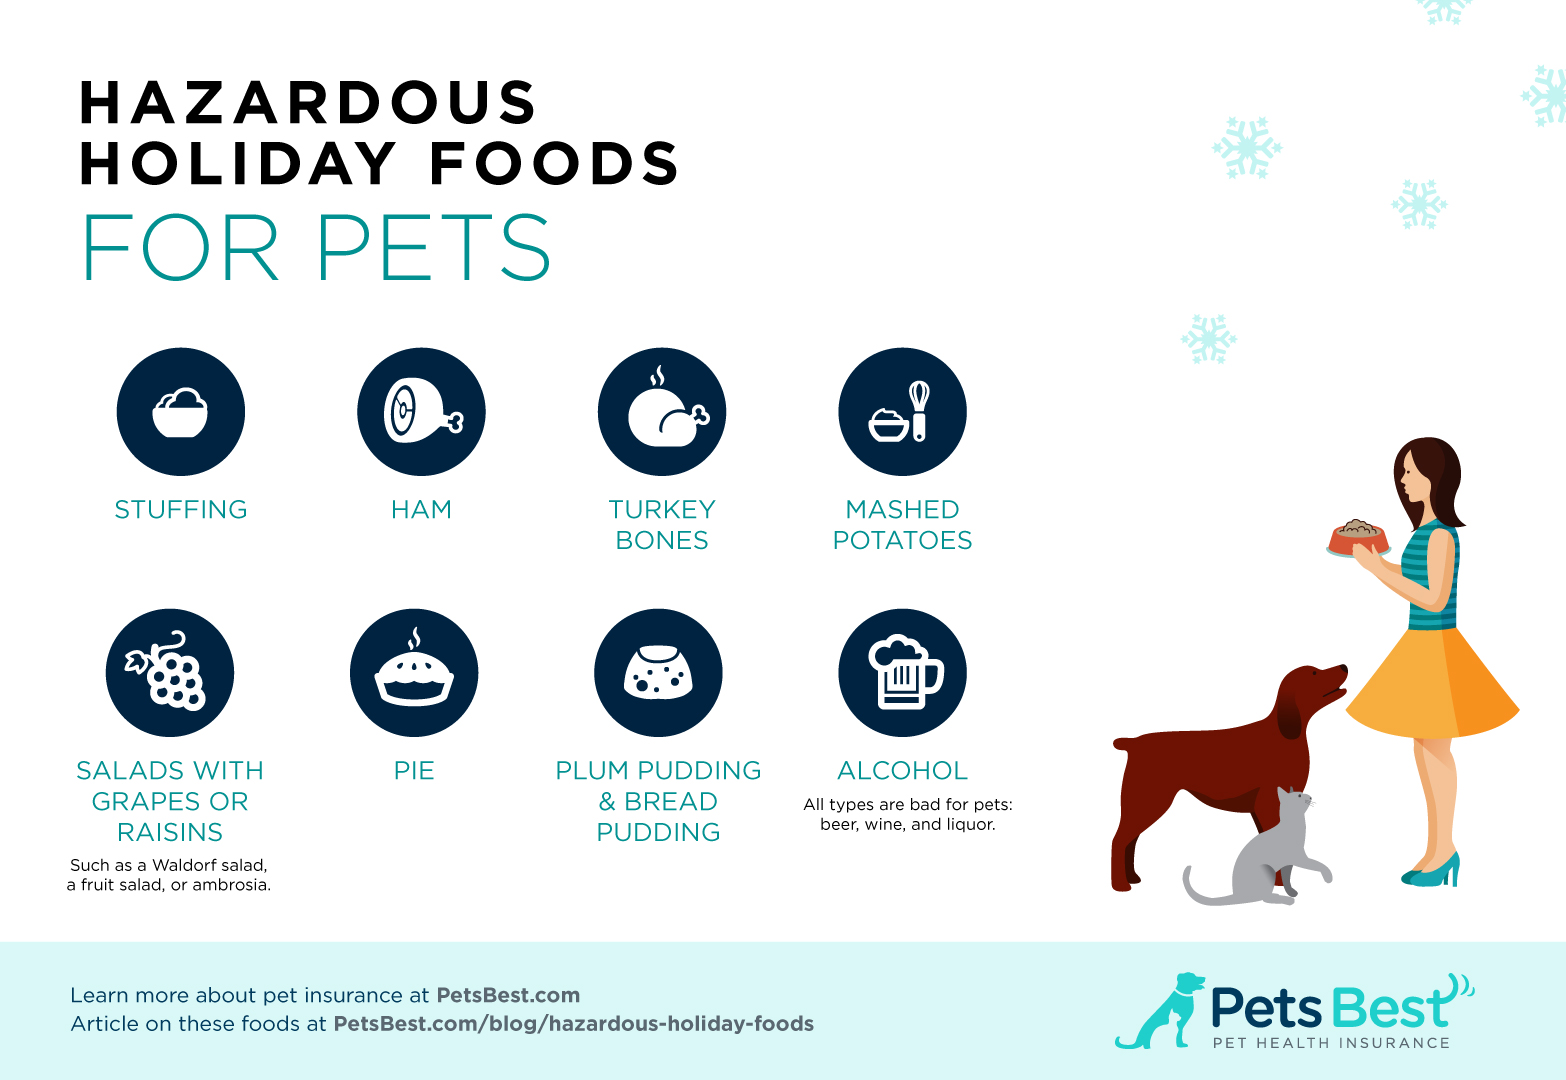 holiday-foods-dangerous-for-dogs-and-cats-from-pets-best-pet-insurance